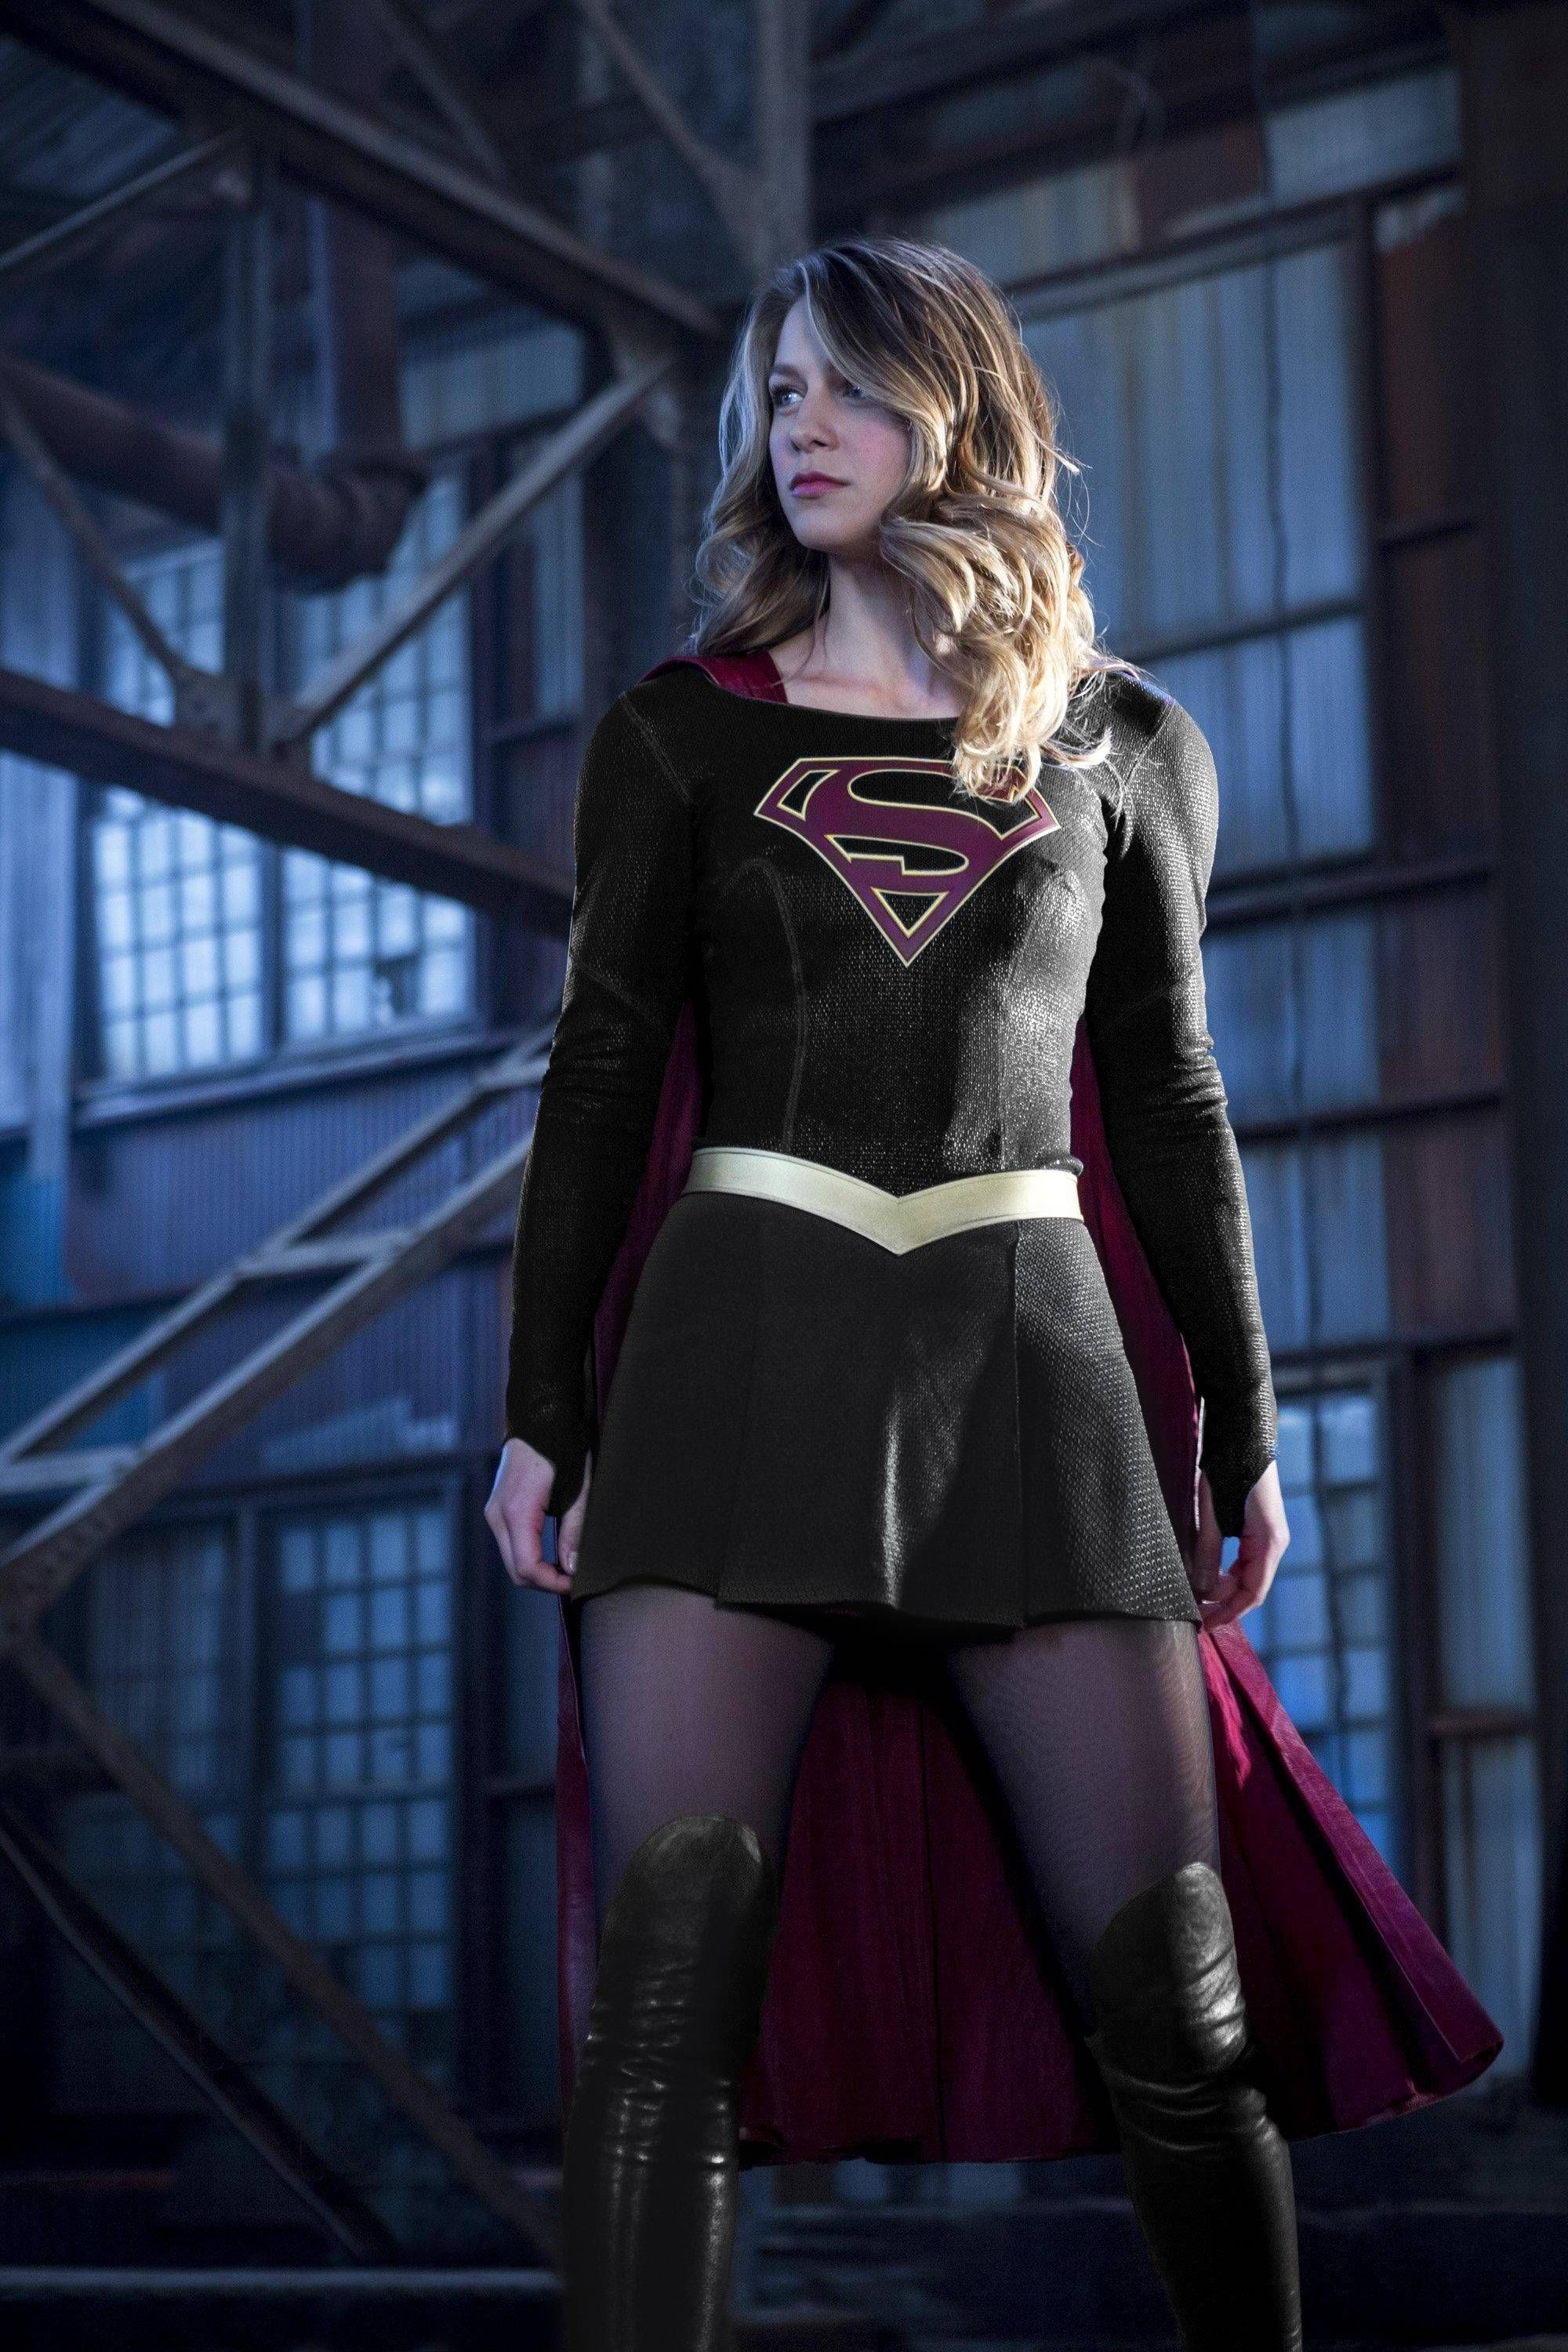 Pin by Kelvin Perez on Supergirl | Supergirl, Melissa ...